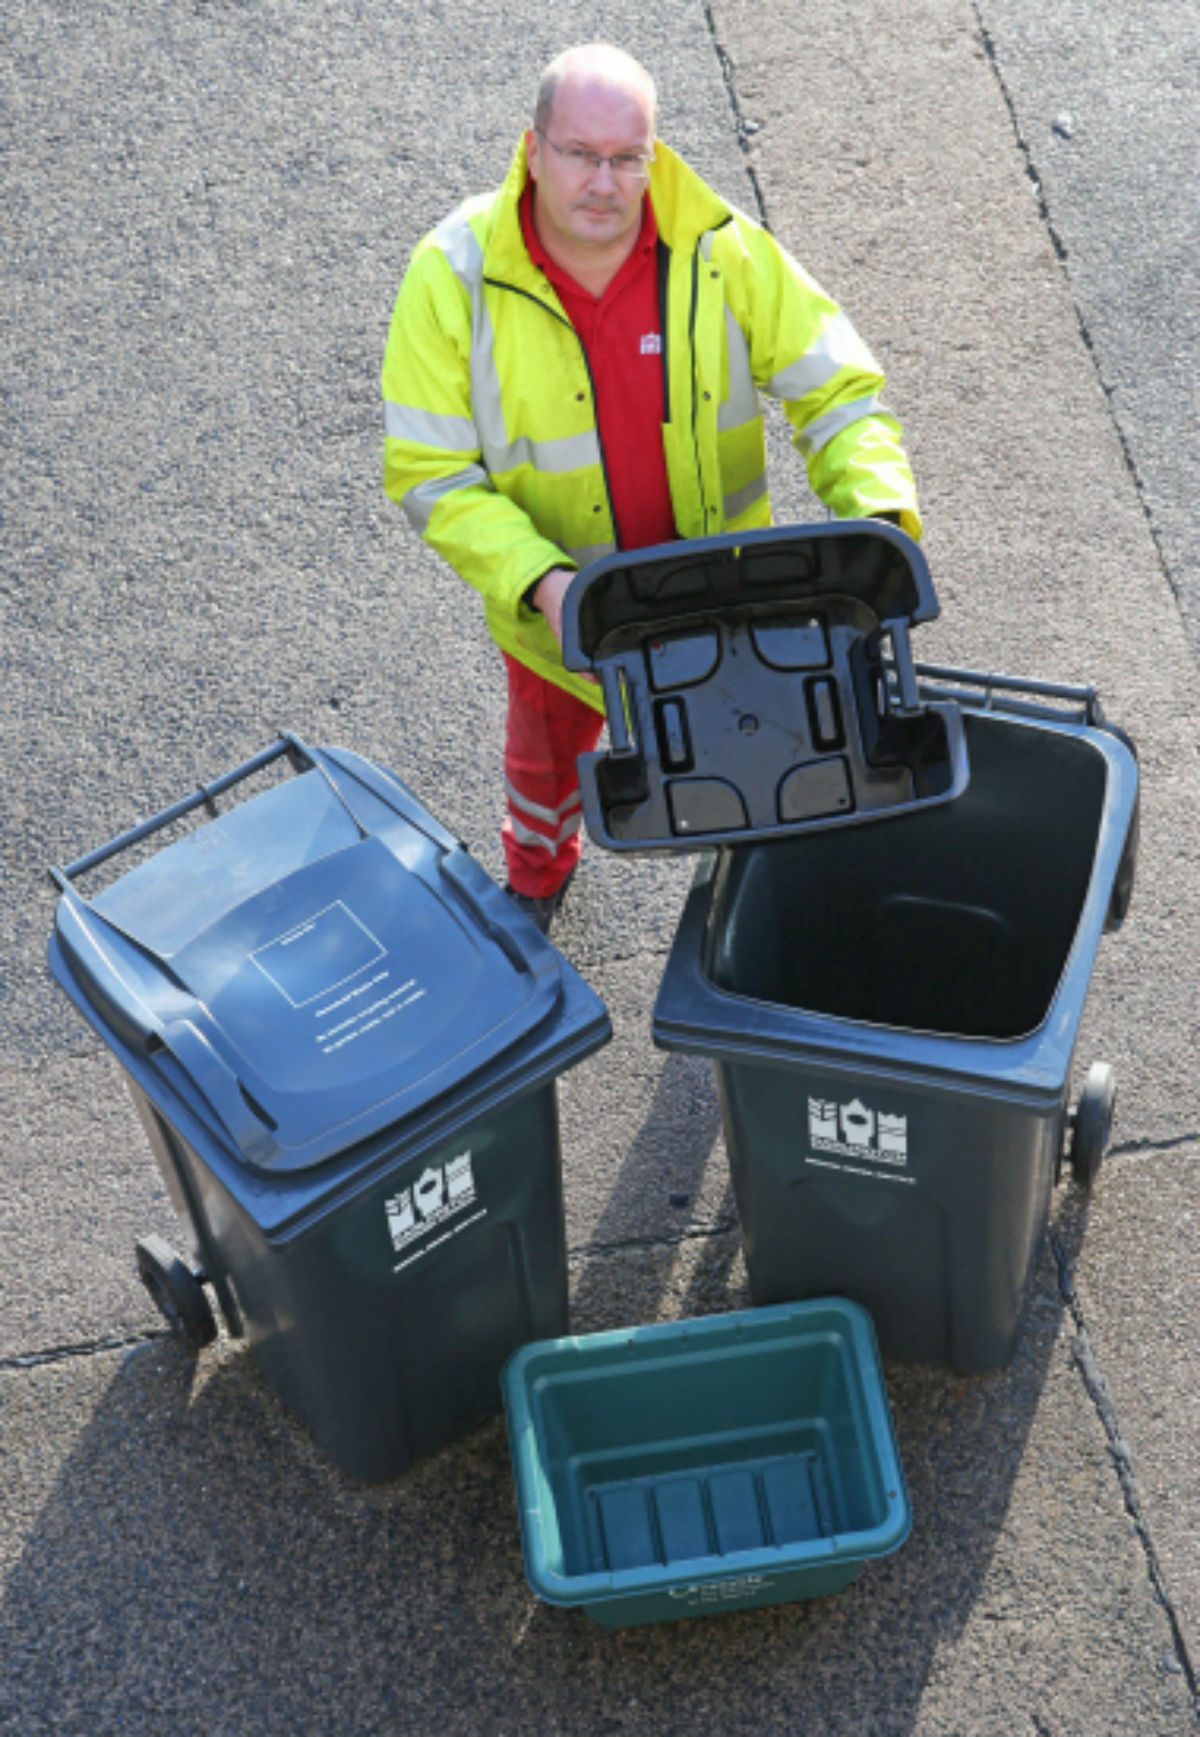 Street Scene team leader Dave Hutchinson with the proposed collection pack for the majority of Darlington households; wheelie bin on left for general rubbish, small green box for glass, smaller wheelie bin for recycling with caddy for paper